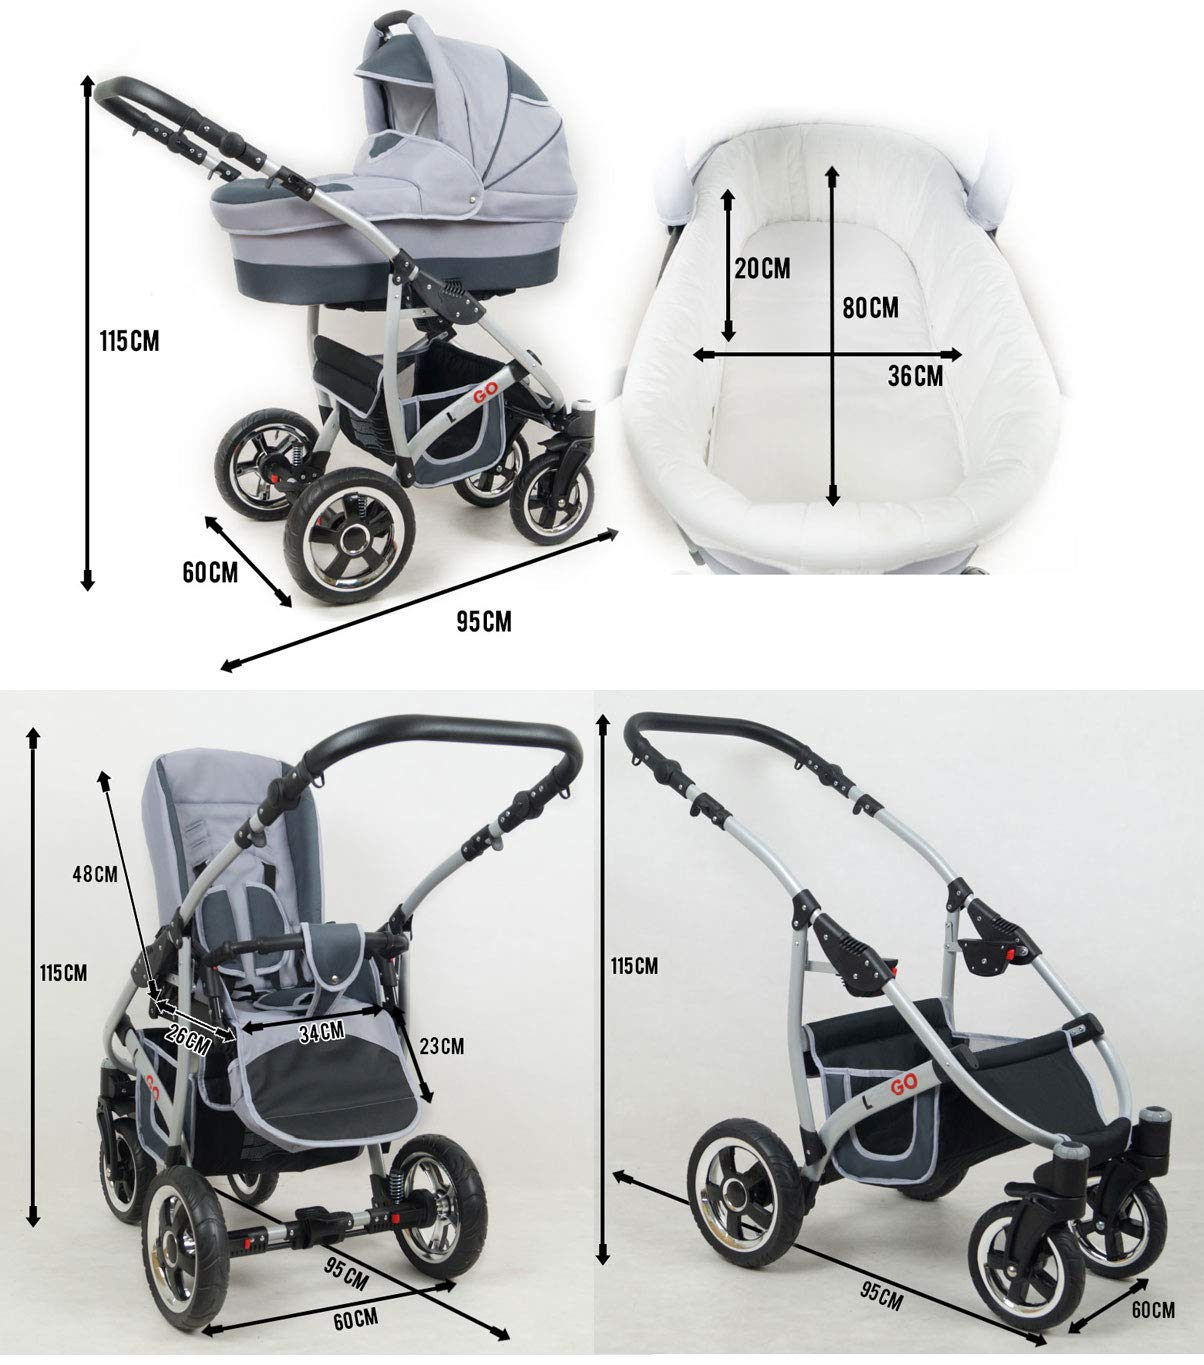 SaintBaby Stroller Pram 2in1 3in1 Set All in one Baby seat Buggy Pushchair New L-GO Black 3in1 with Baby seat SaintBaby 3in1 or 2in1 Selectable. At 3in1 you will also receive the car seat (baby seat). Of course you get the baby tub (classic pram) as well as the buggy attachment (sports seat) no matter if 2in1 or 3in1. The car naturally complies with the EU safety standard EN1888. During production and before shipment, each wagon is carefully inspected so that you can be sure you have one of the best wagons. Saintbaby stands for all-in-one carefree packages, so you will also receive a diaper bag in the same colour as the car as well as rain and insect protection free of charge. With all the colours of this pram you will find the pram of your dreams. 3